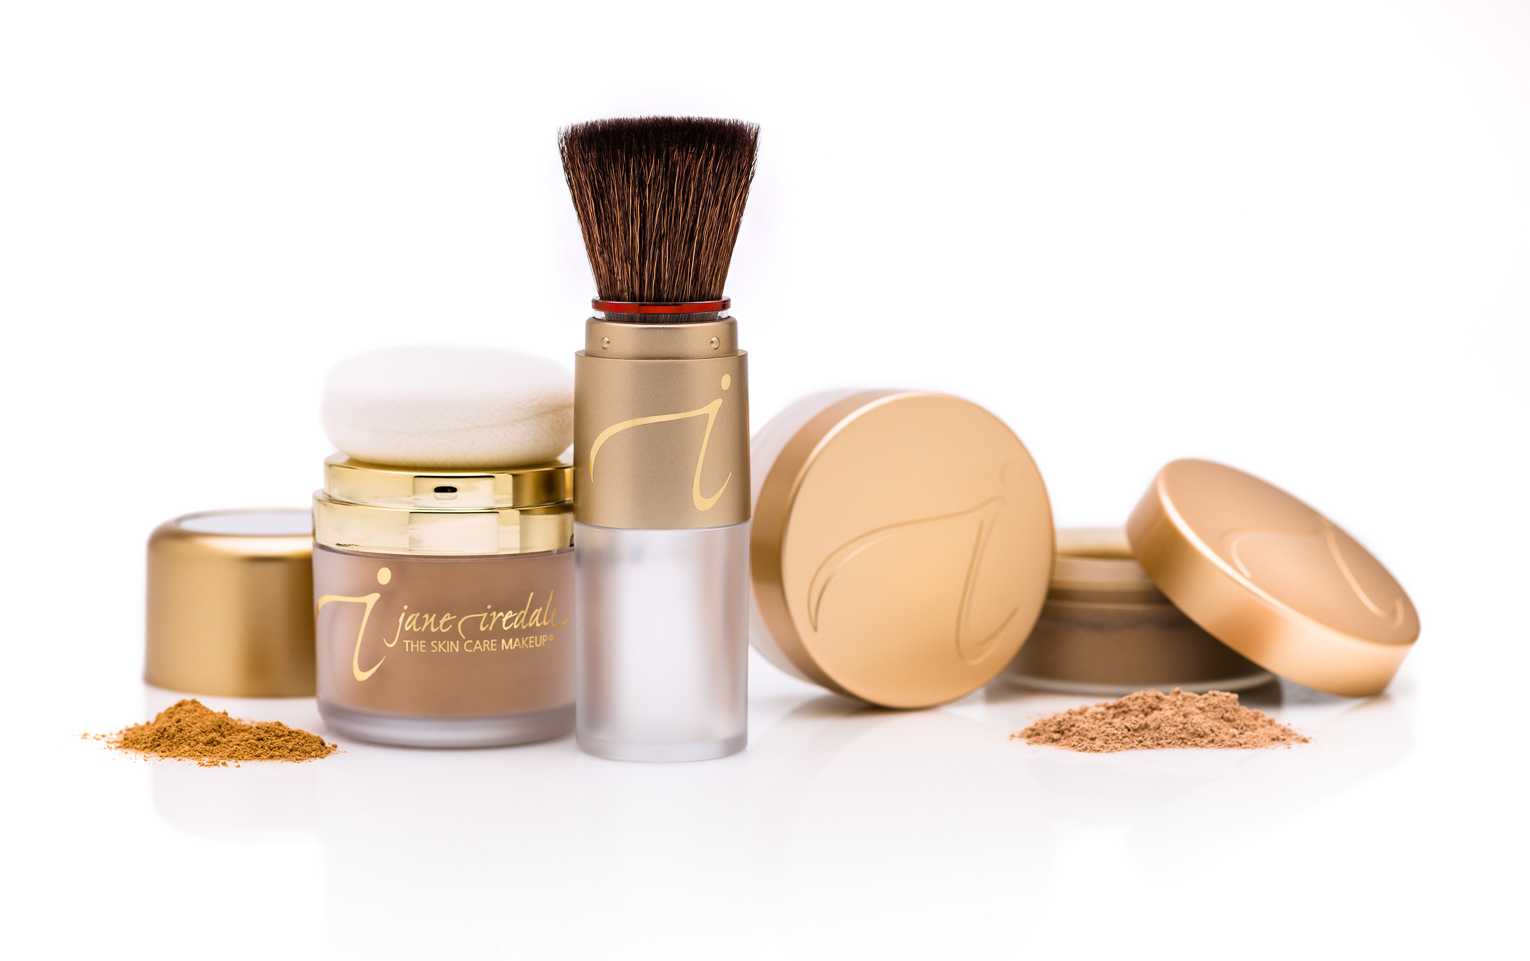 Jane Iredale Makeup Neu Look Med Spa and Skin Center San Diego CA